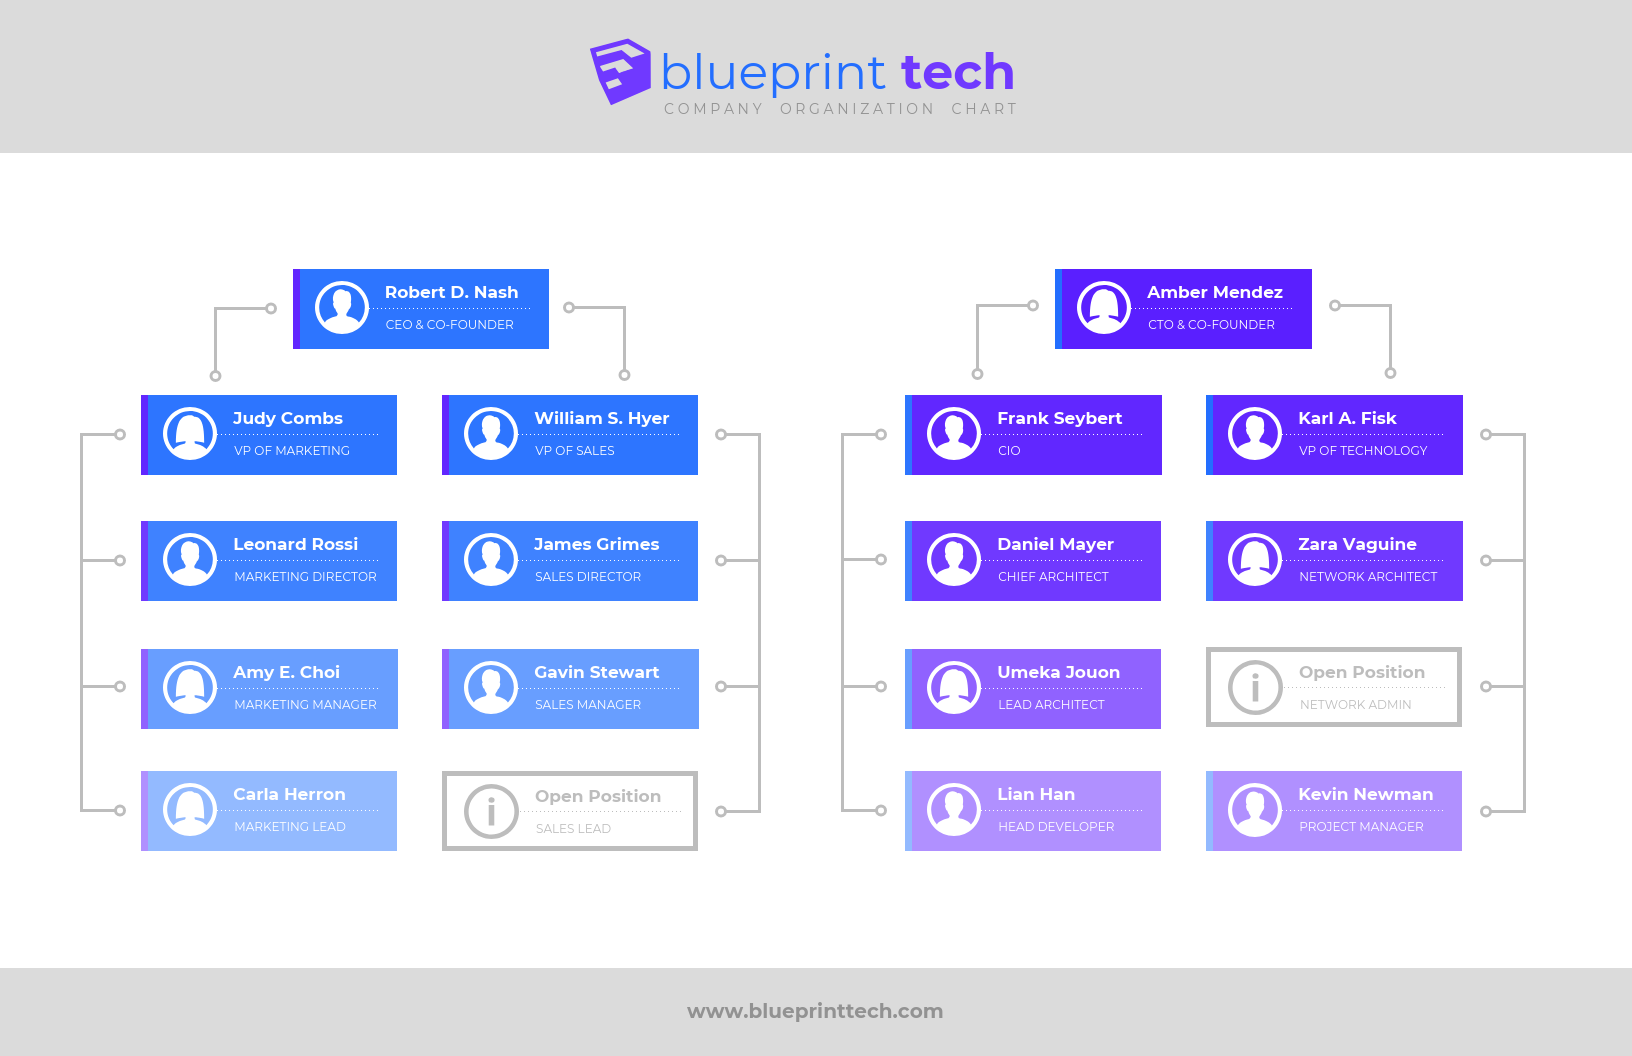 graphical user interface, diagram, application, teams description automatically generated